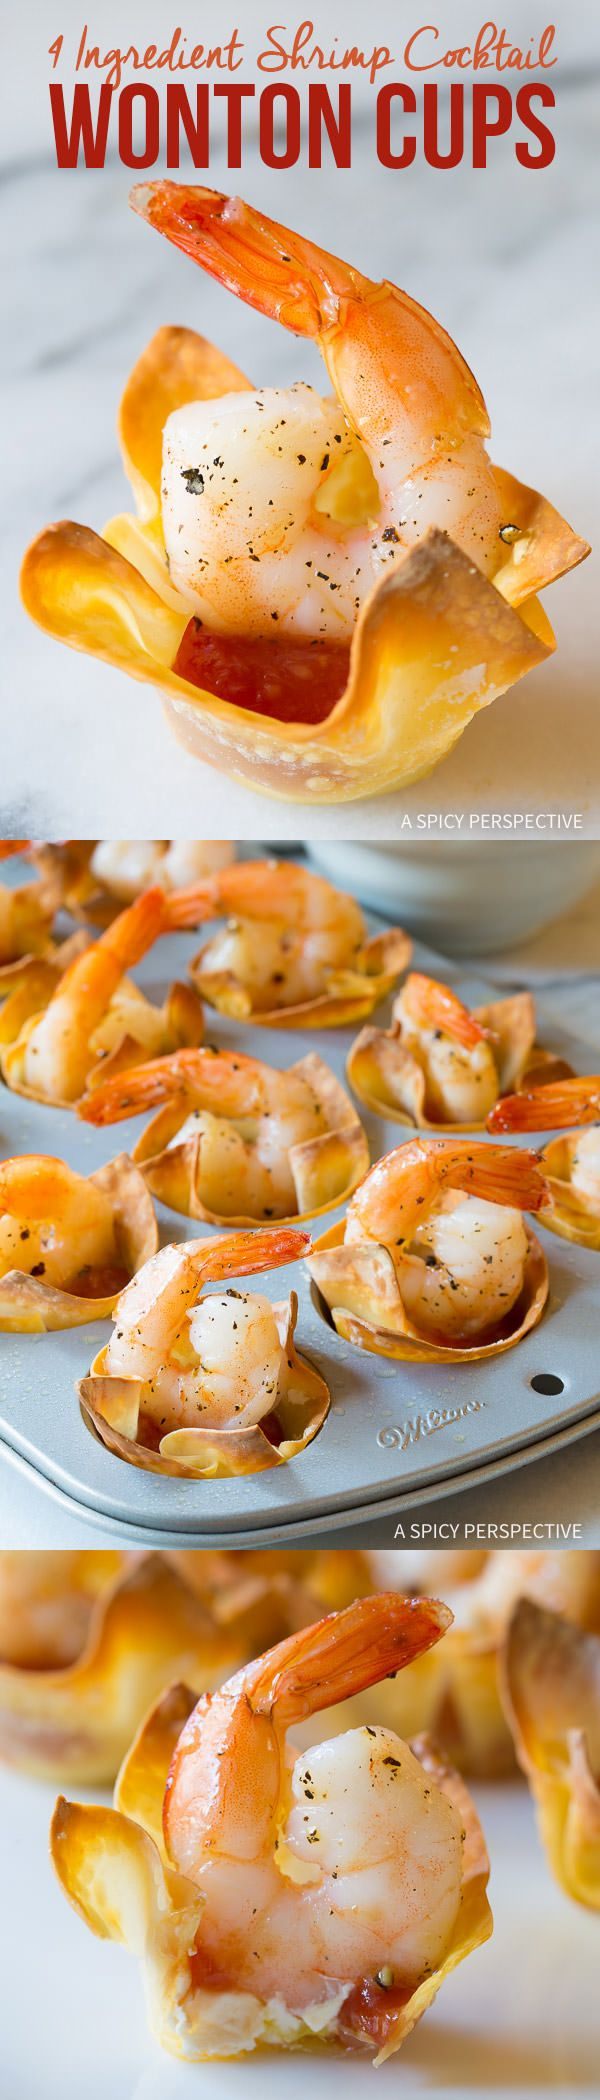 Fabulous 4-Ingredient Shrimp Cocktail Wonton Cups Recipe on ASpicyPerspective.com #holidays